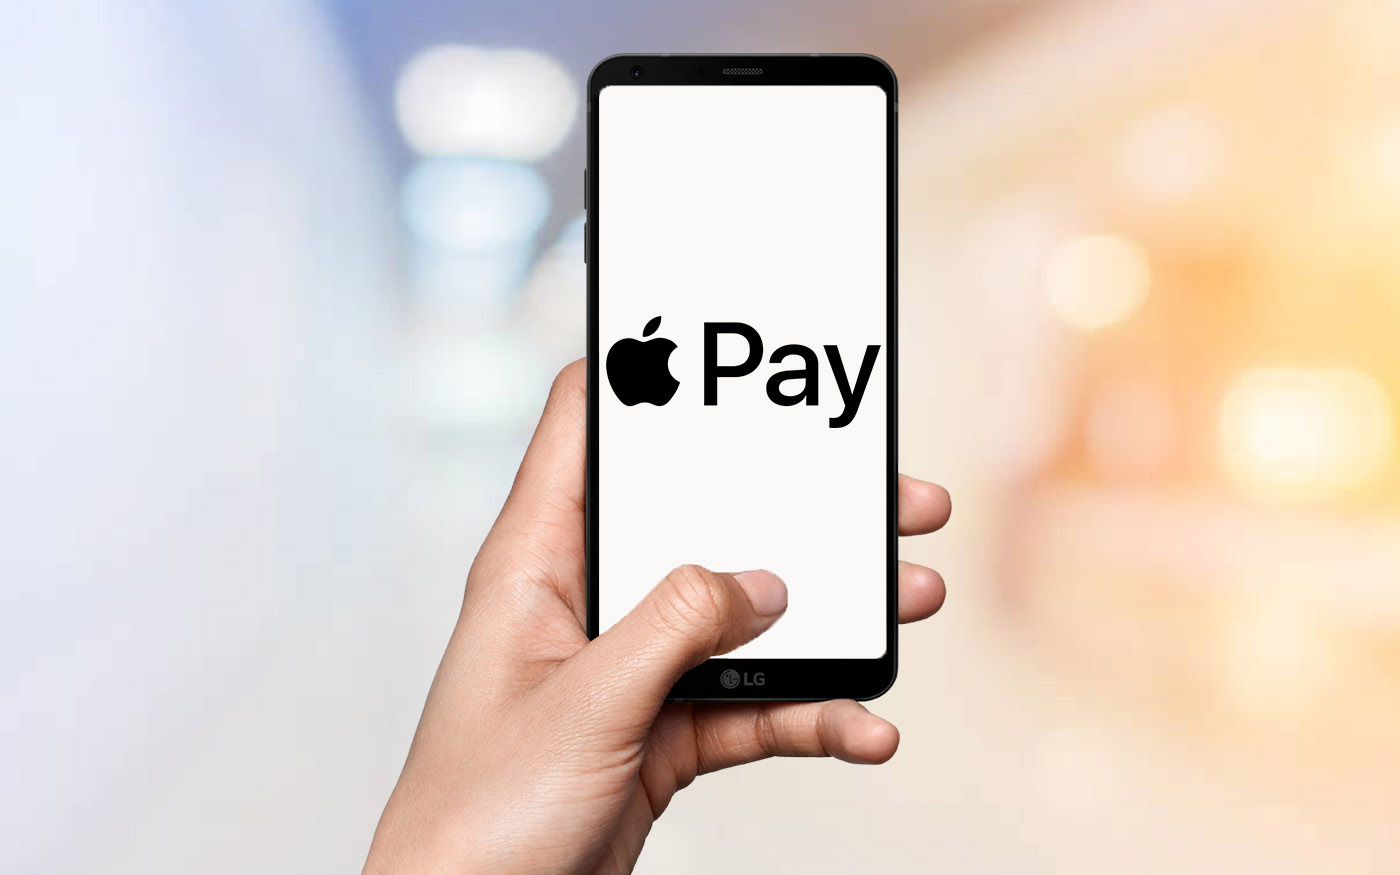 Does McDonald's take apple pay